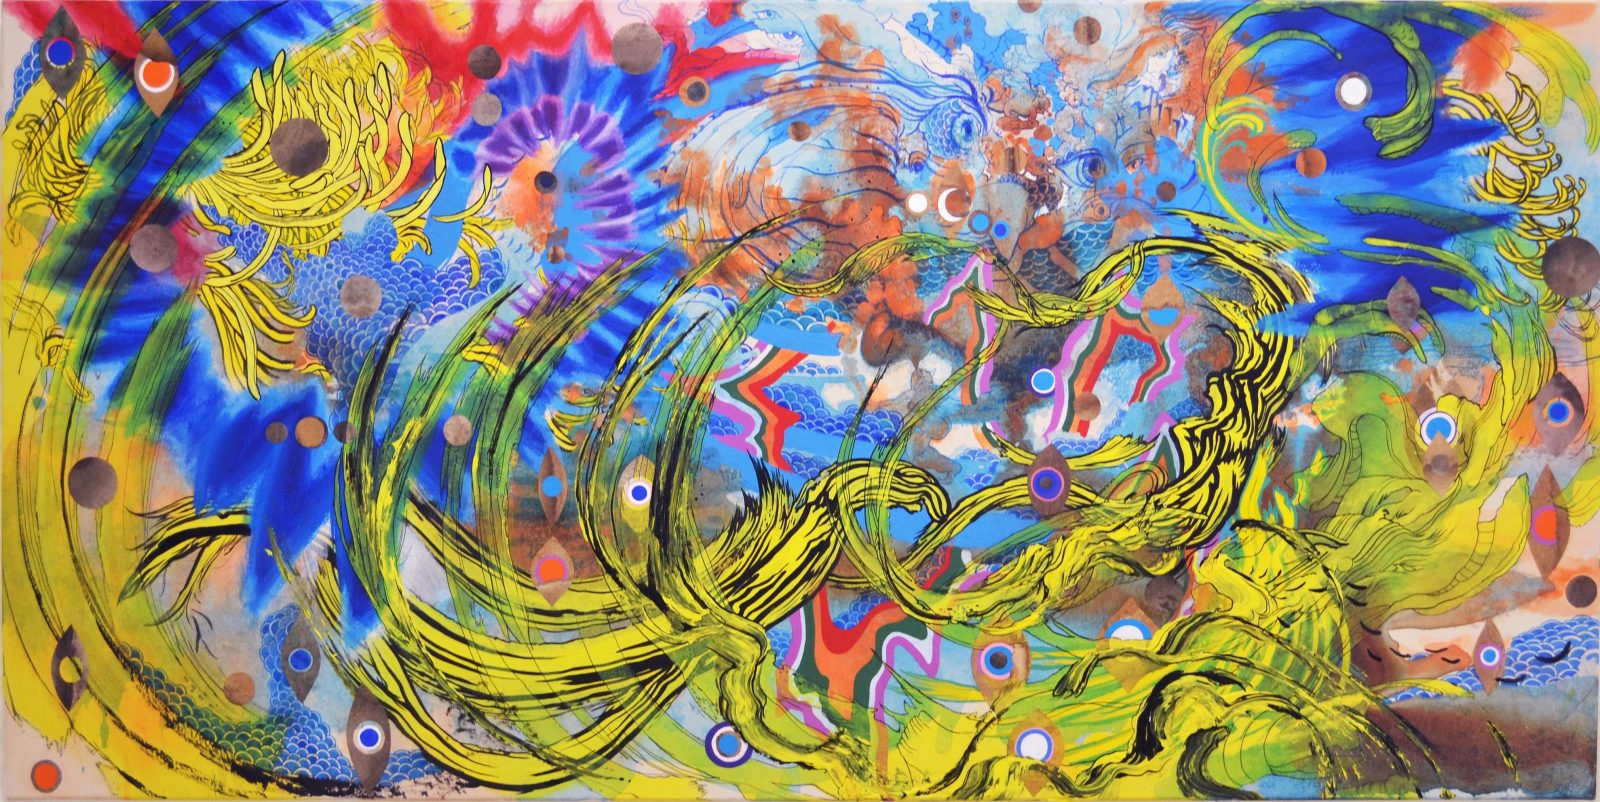 Lucid yellow, 2020, ink and acrylic on Hanji mounted on canvas, 24in x 48in